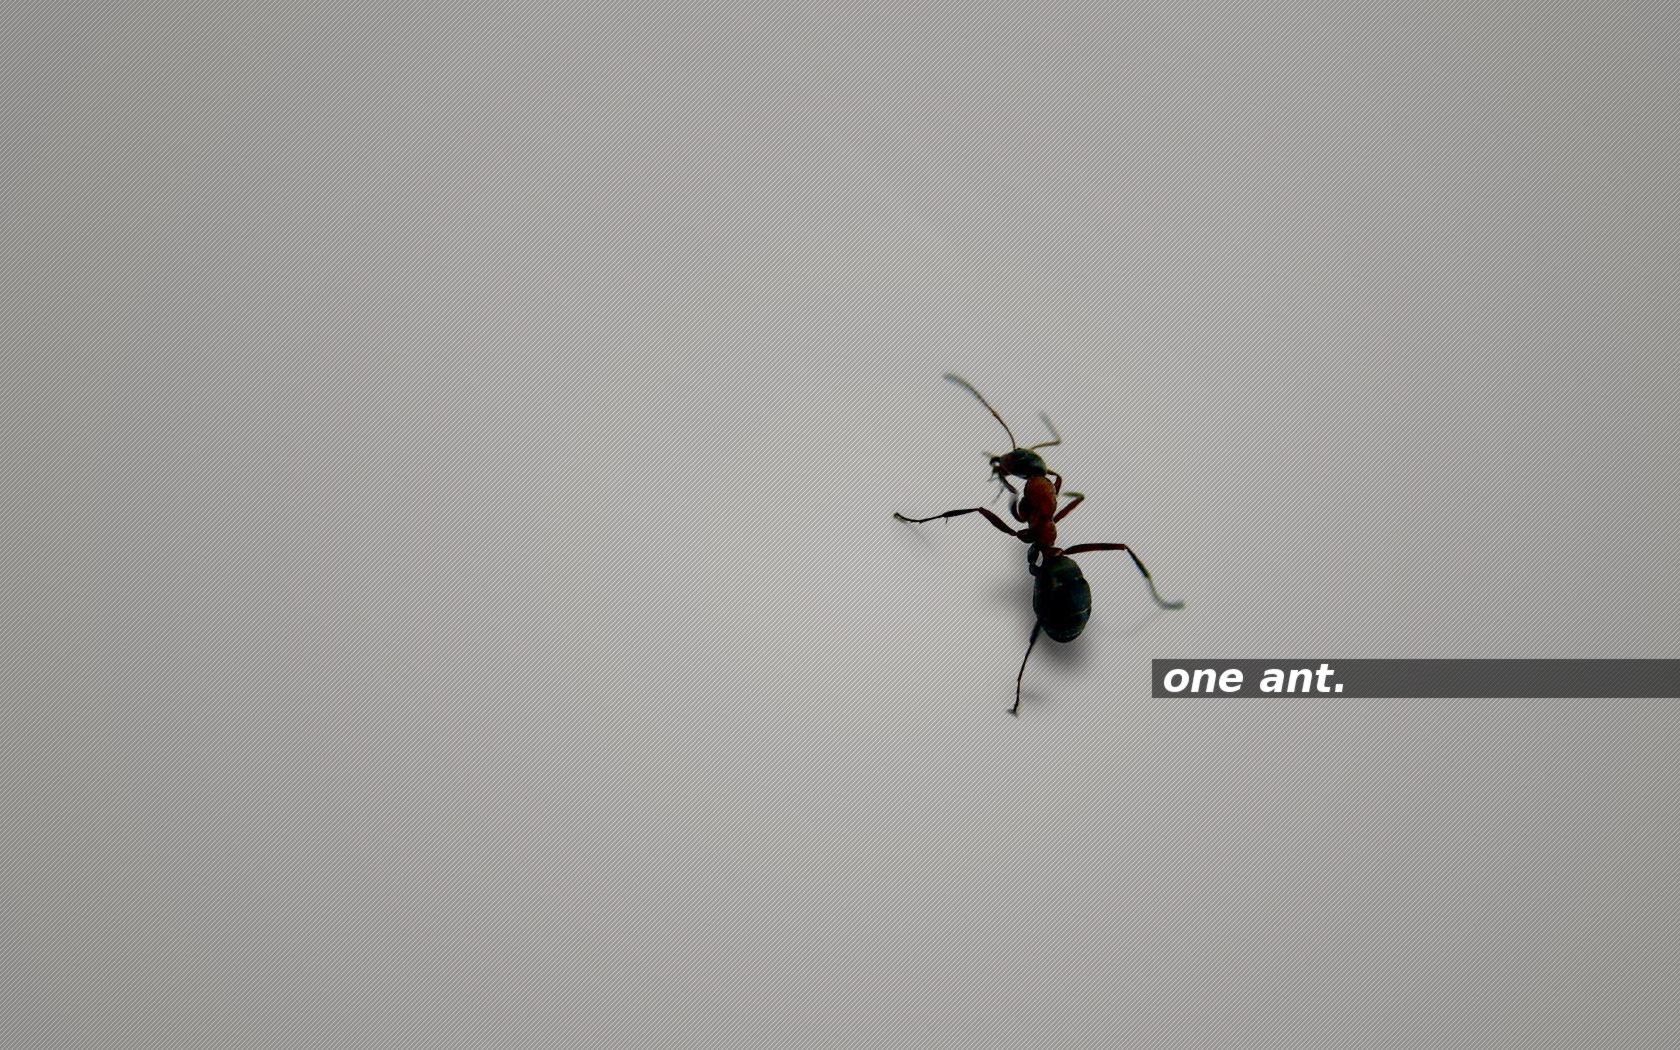 one ant. grey